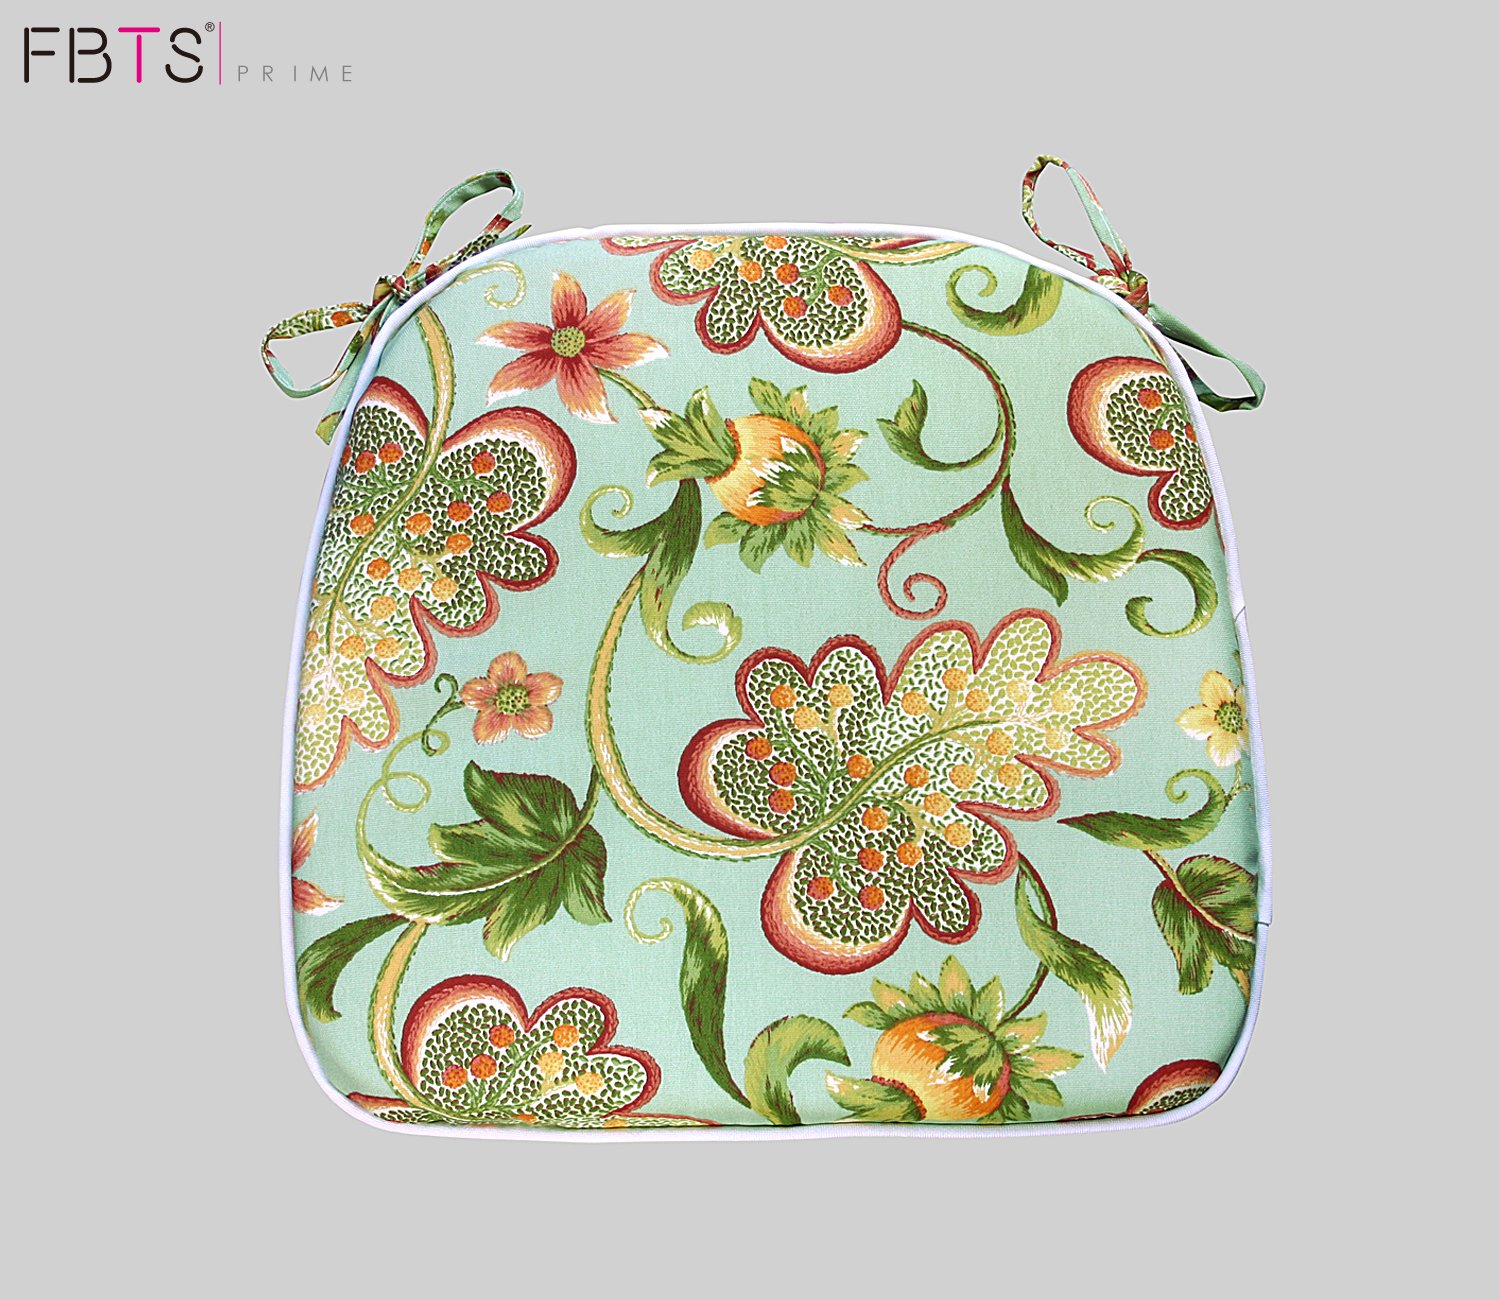 FBTS Prime Outdoor Chair Cushions (Set of 2) 16x17 Inches Patio Seat Cushions Green Floral Square Chair Pads for Outdoor Patio Furniture Garden Home Office